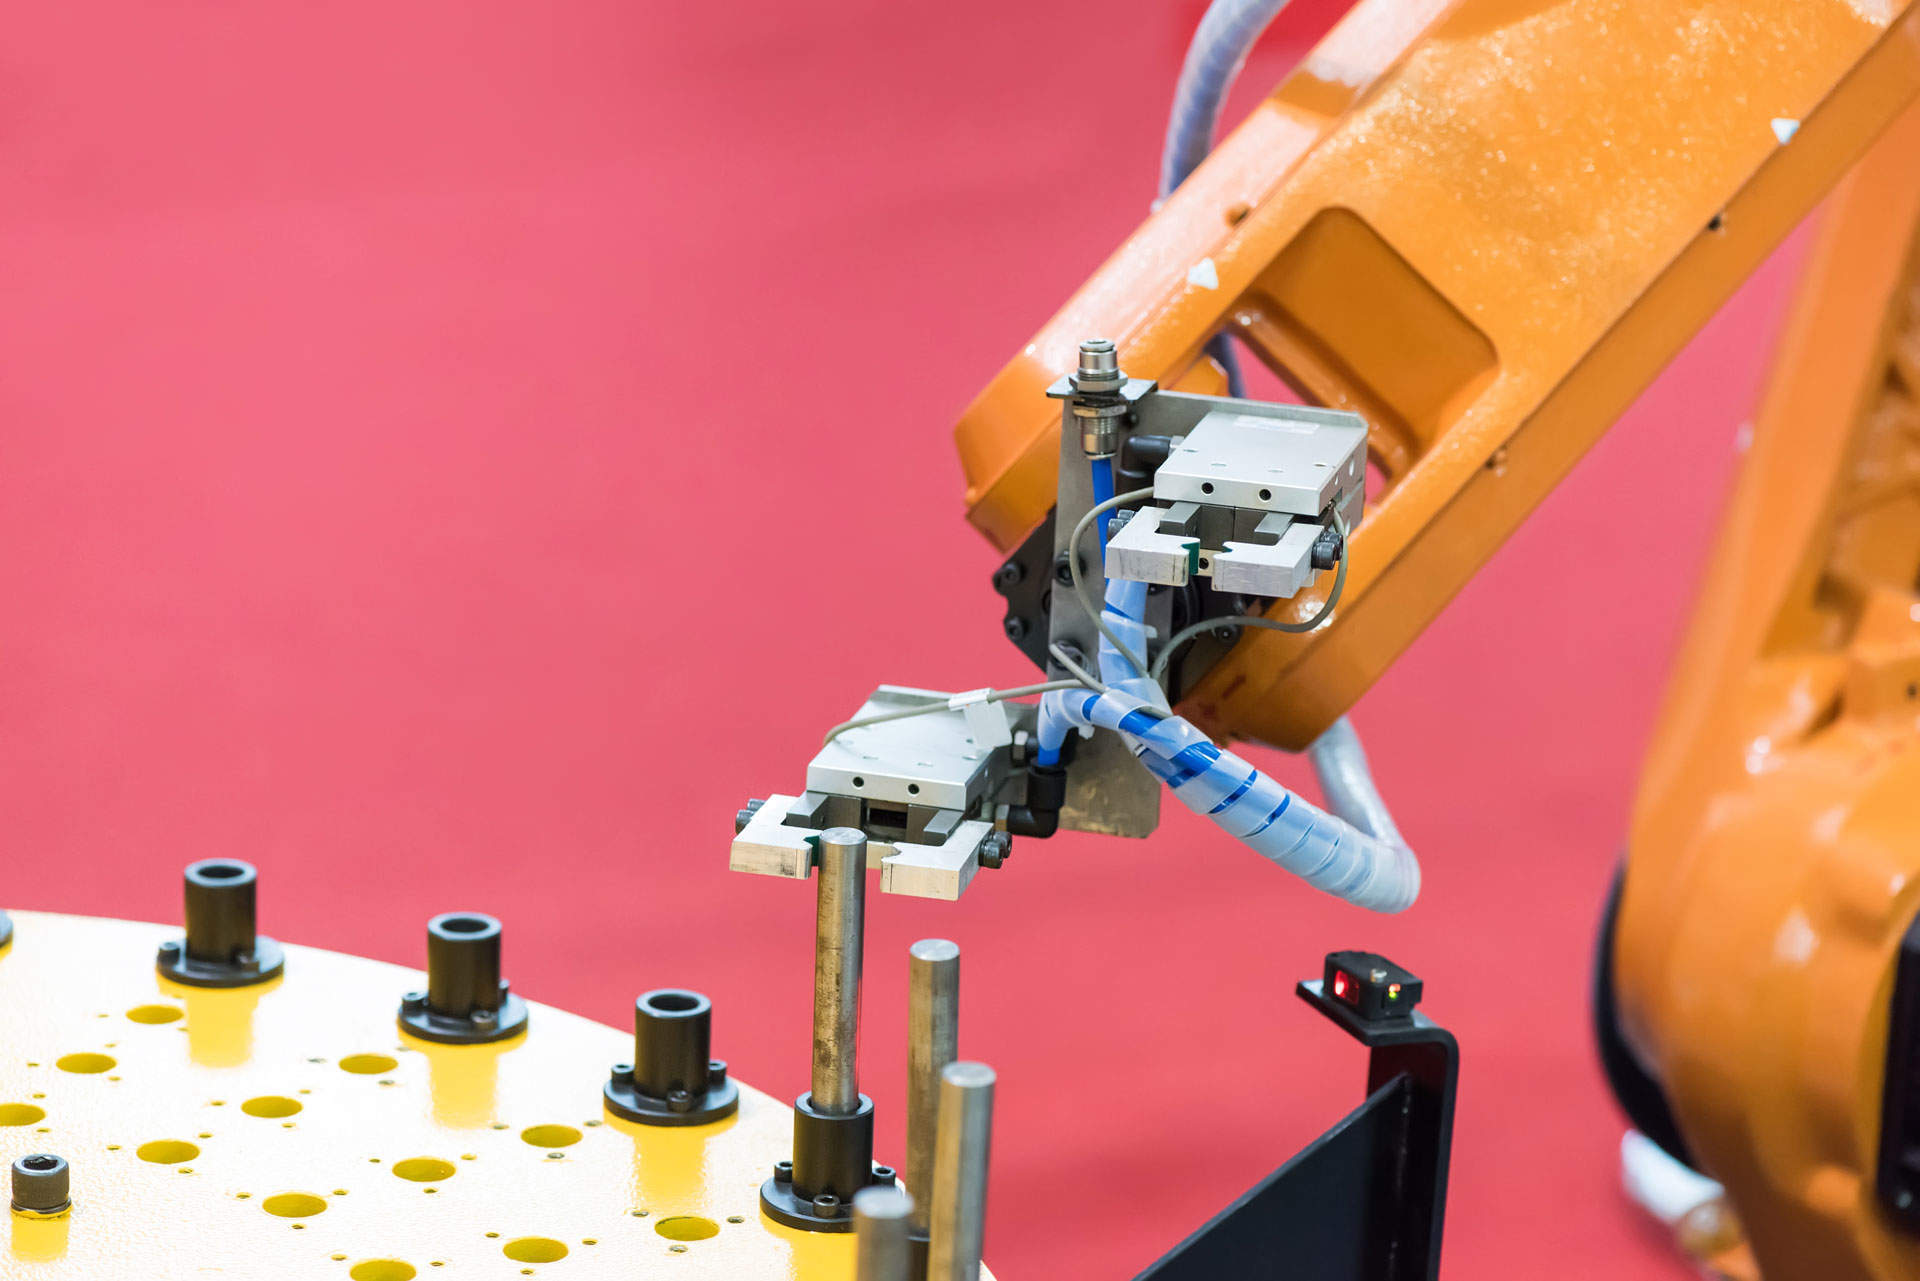 Collaborative robots market to see 1900% growth by 2025